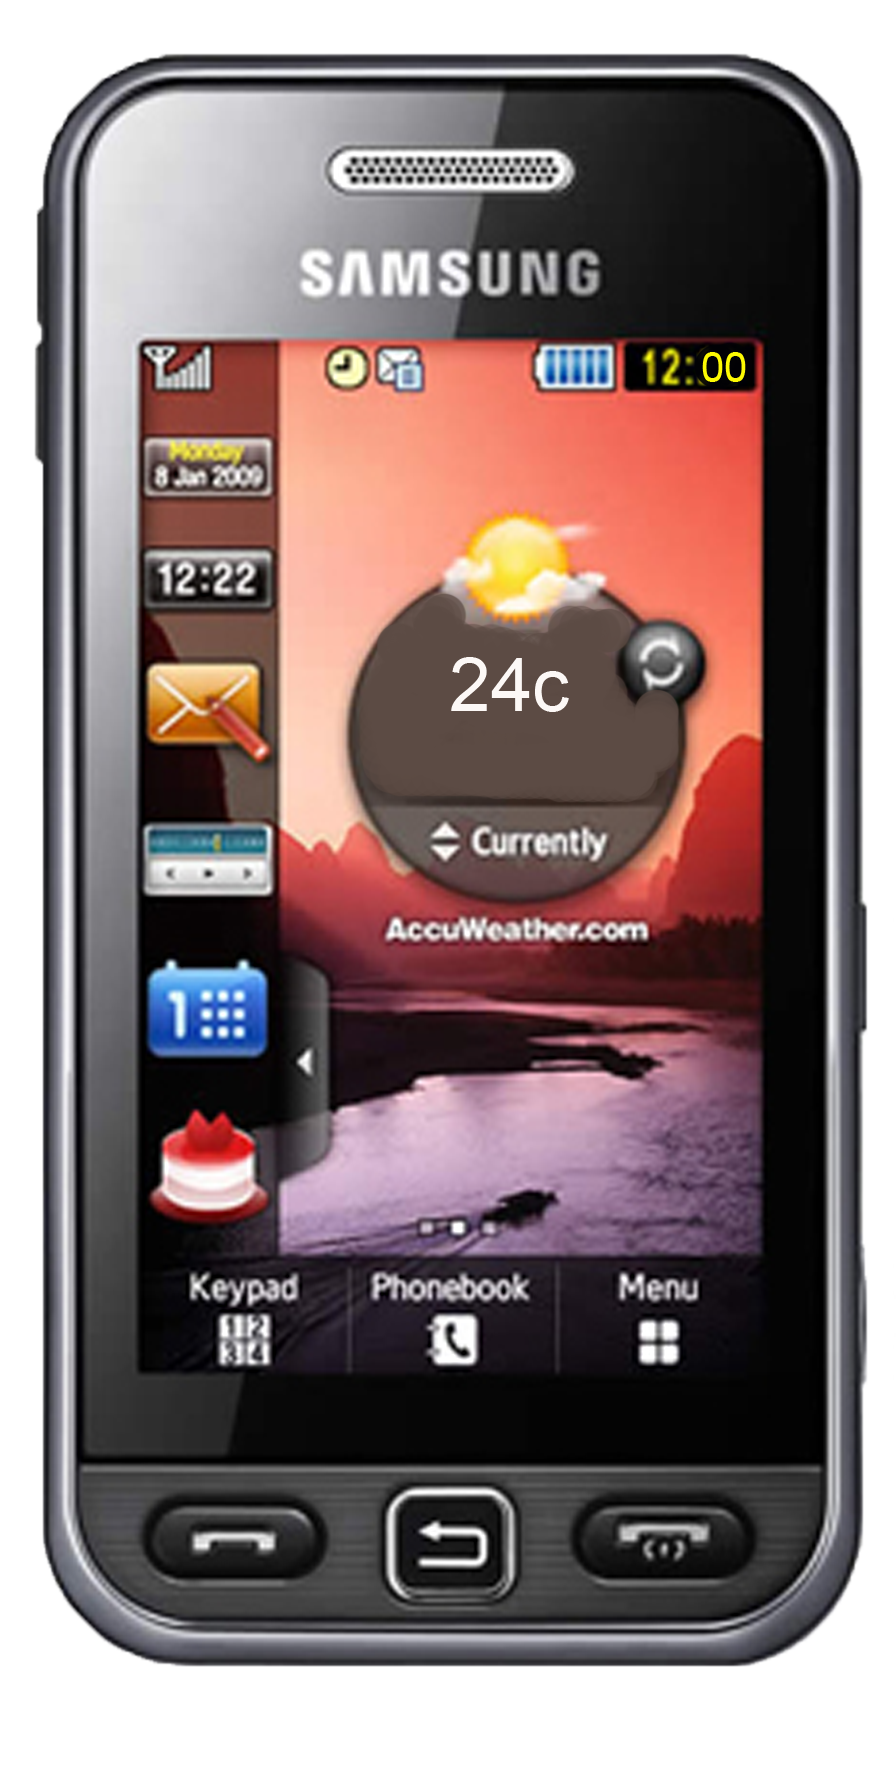 Samsung Mobile Phone PNG - 5464